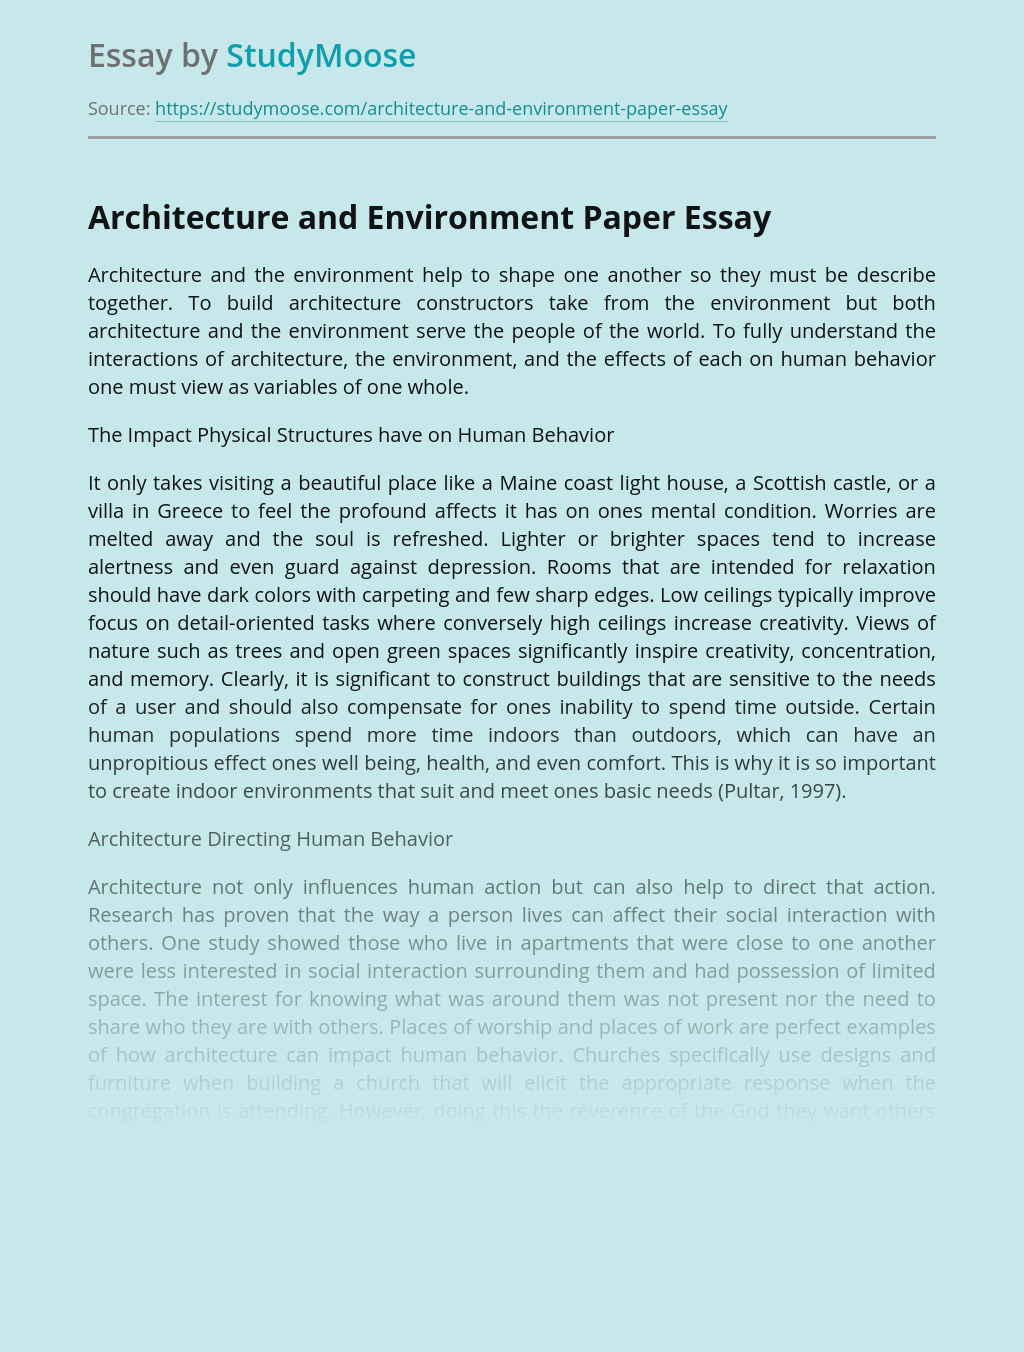 Architecture and Environment Paper